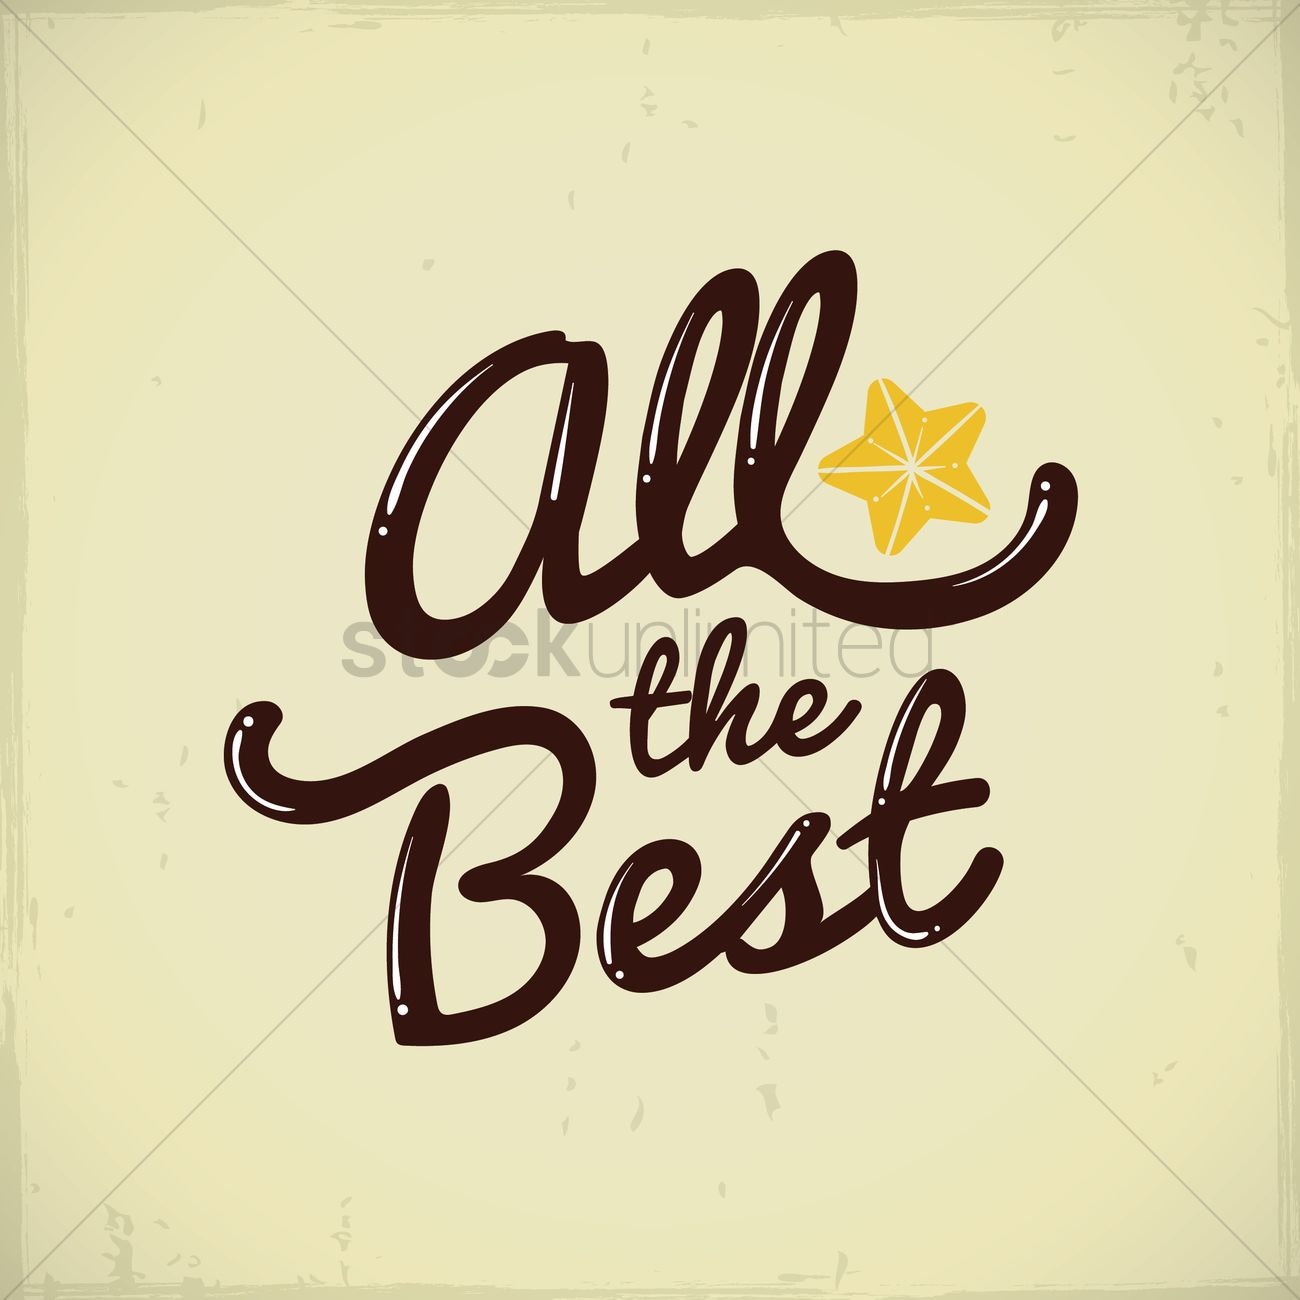 All the best greeting vector image 1811332 stockunlimited all the best greeting vector graphic kristyandbryce Image collections